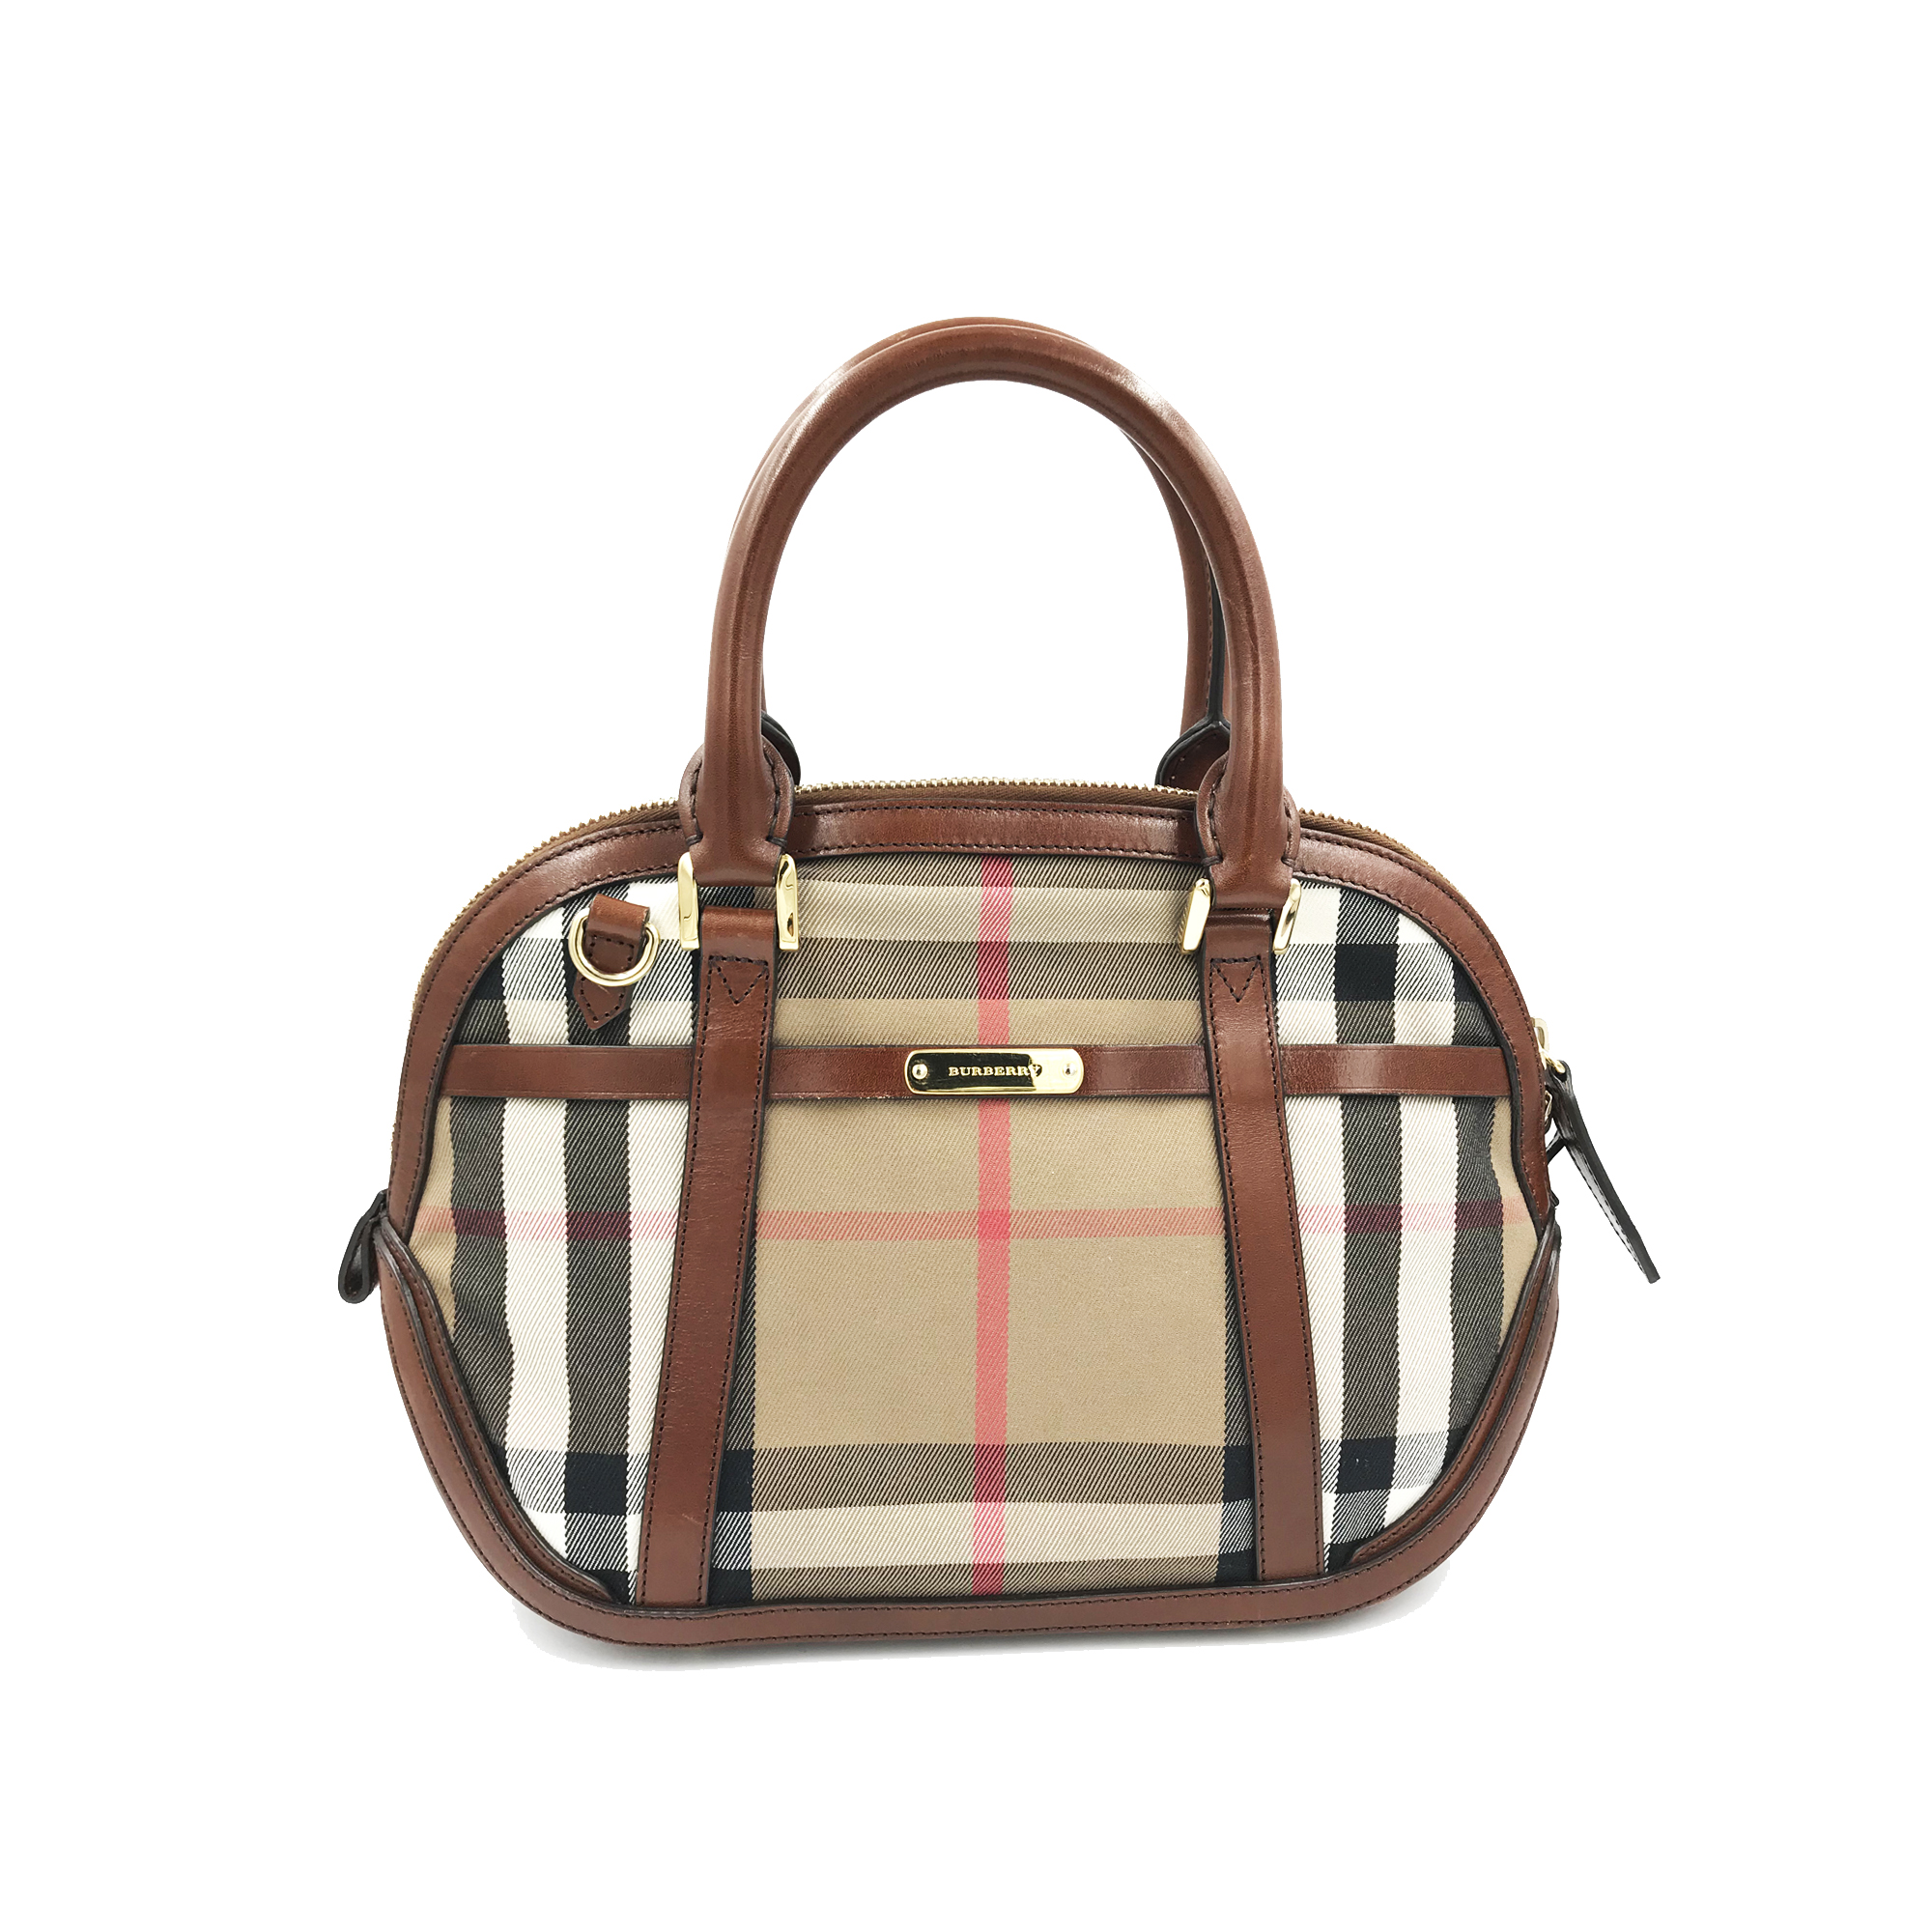 eee4e4b740e2 Burberry Small Orchard Dark Tan Ladies Tote Bag 3853773.A